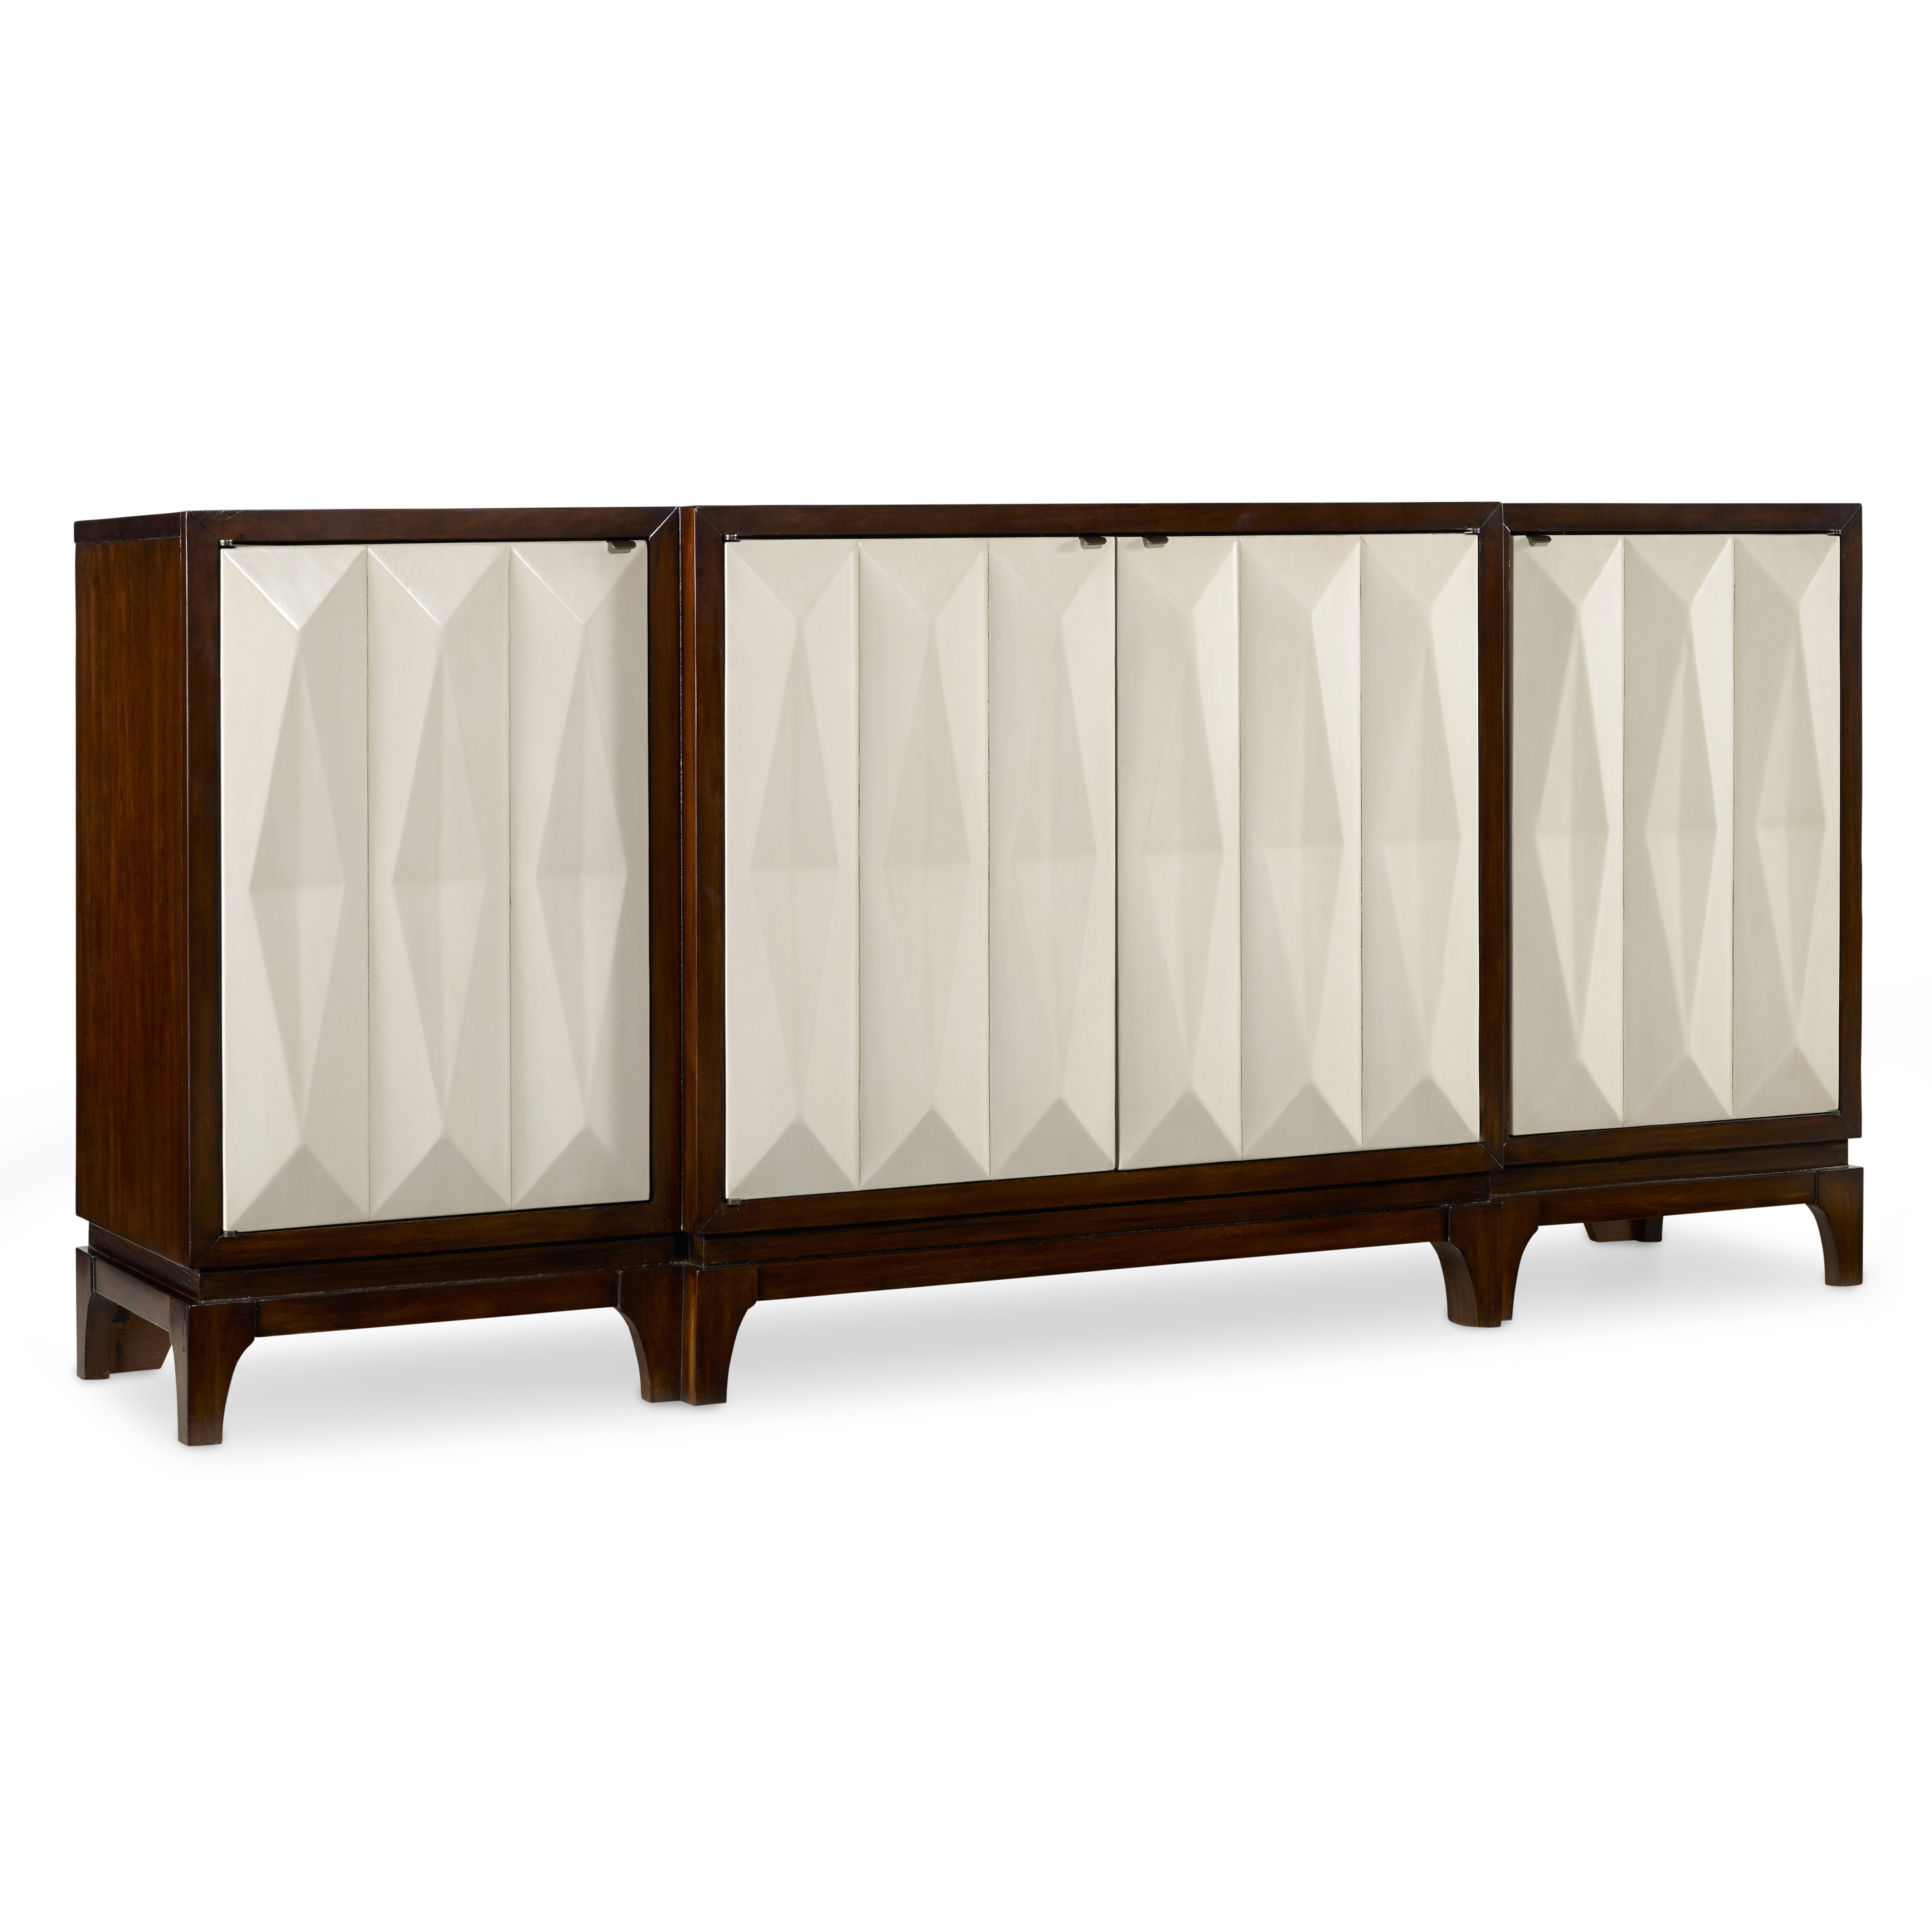 Hooker Furniture Melange Credenza Reviews Wayfair